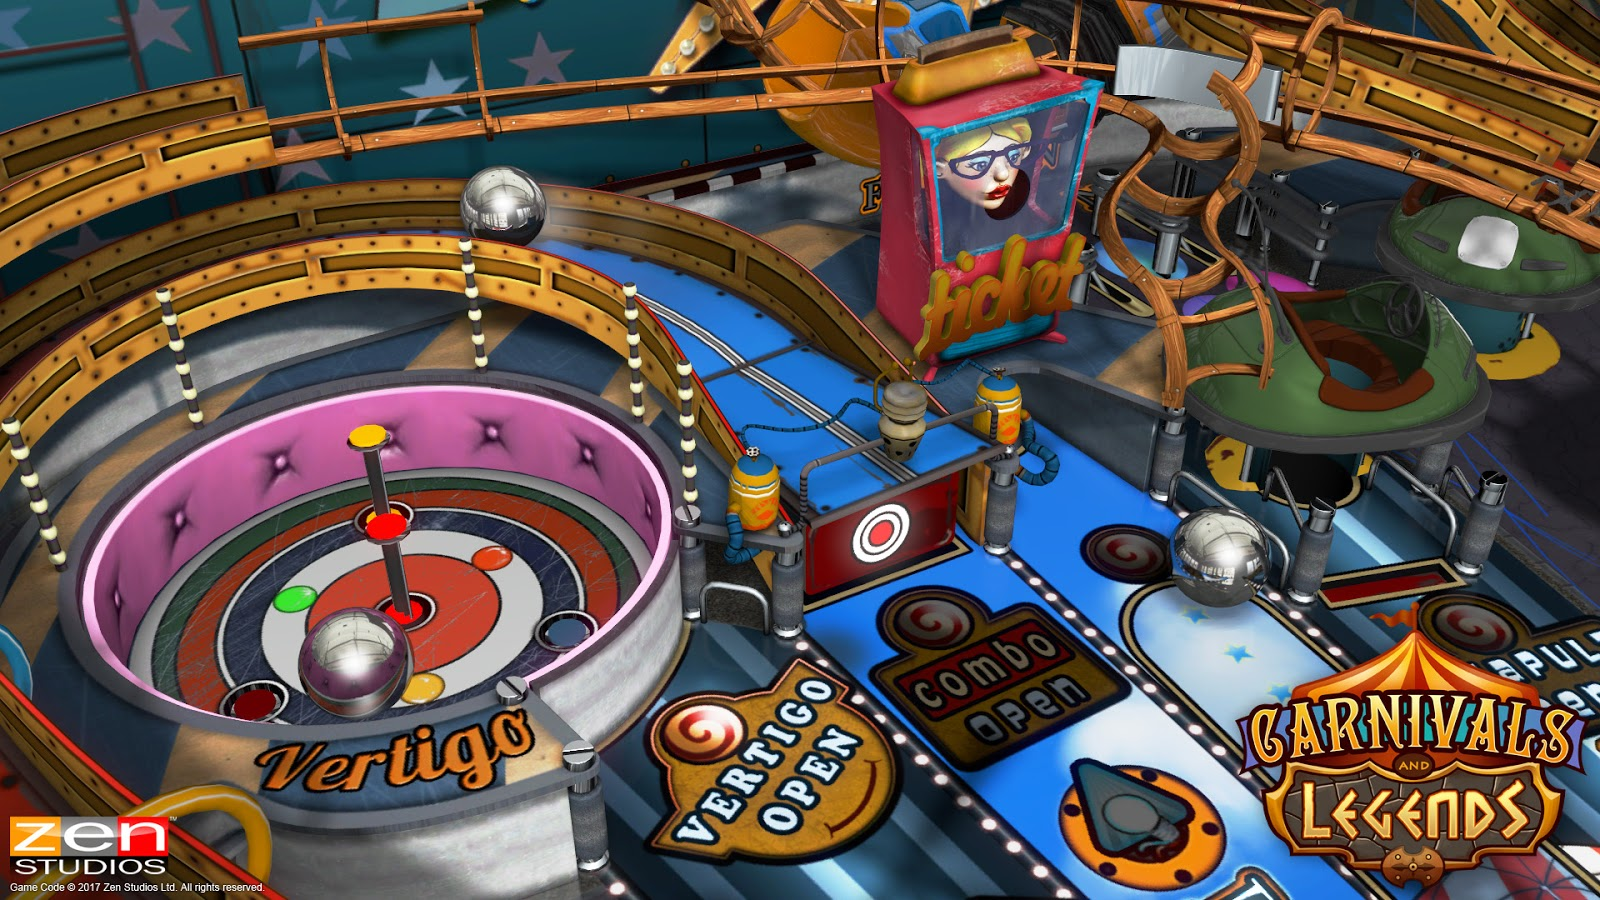 Pinball FX3: Carnivals & Legends - Switch Review | Chalgyr's Game Room